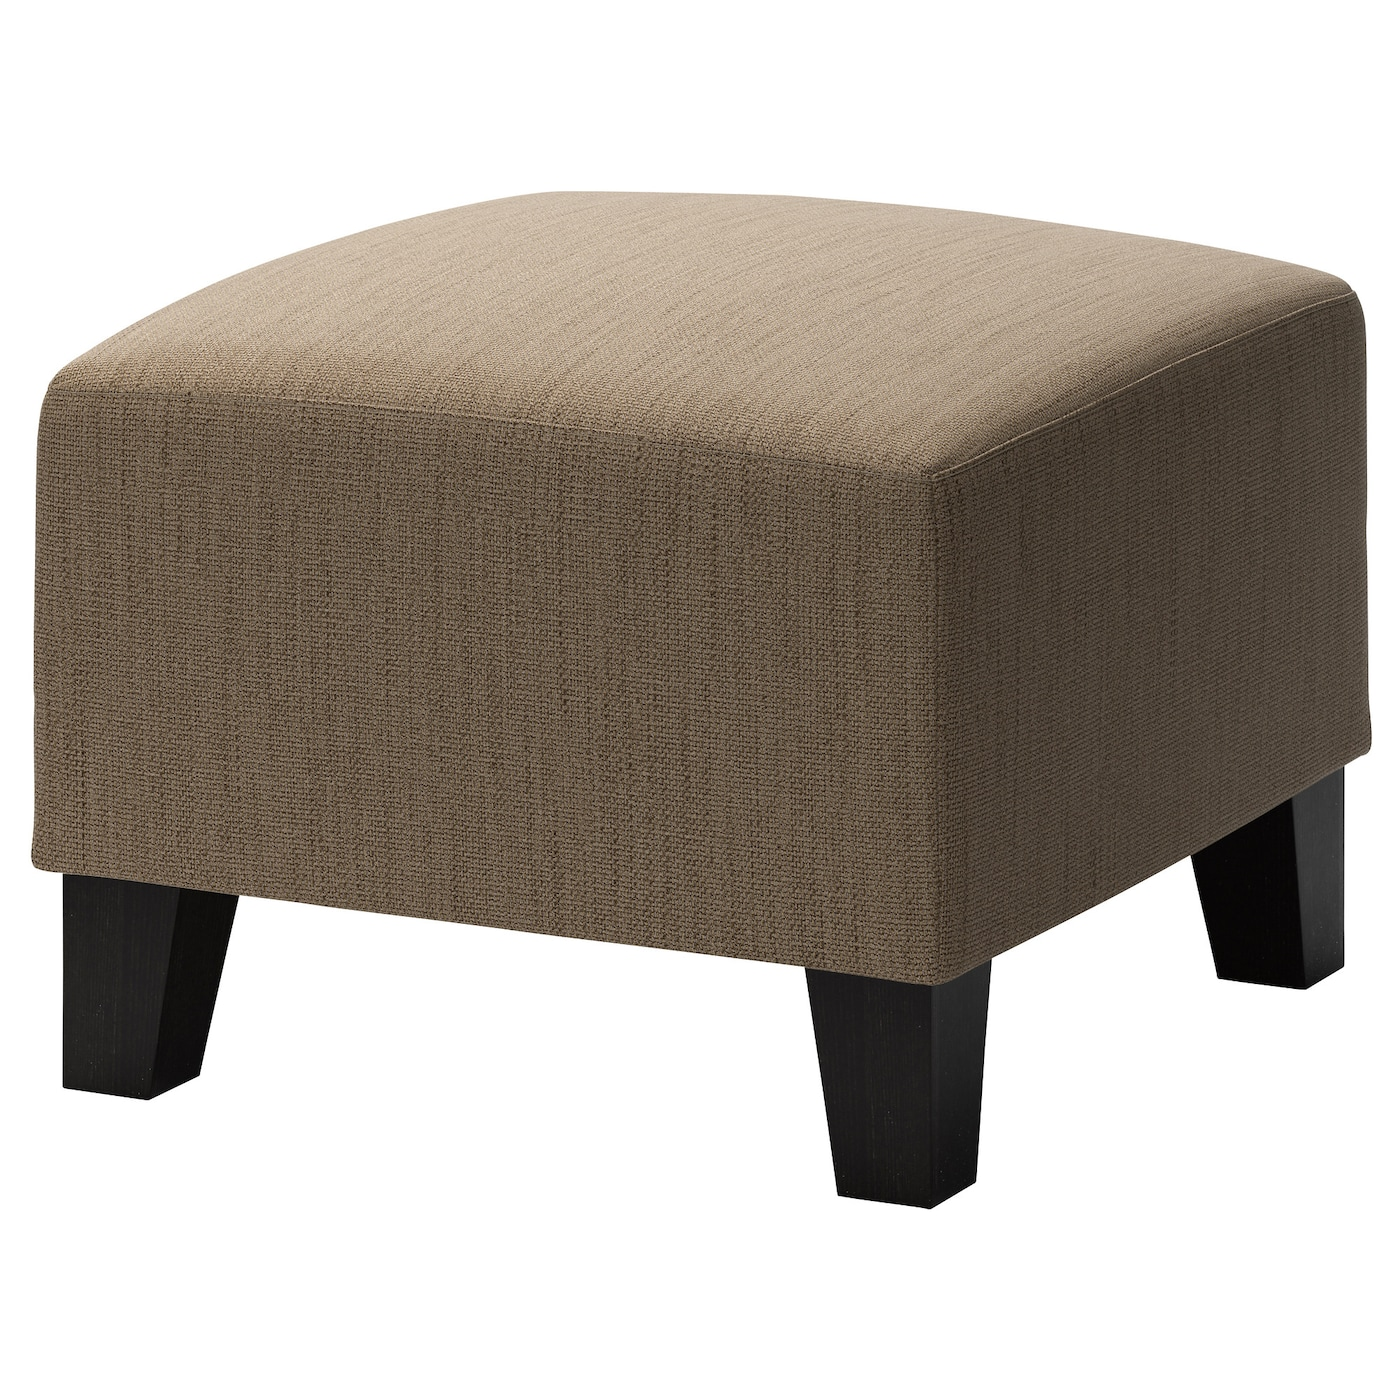 Eken 196 S Footstool Hensta Light Brown Ikea